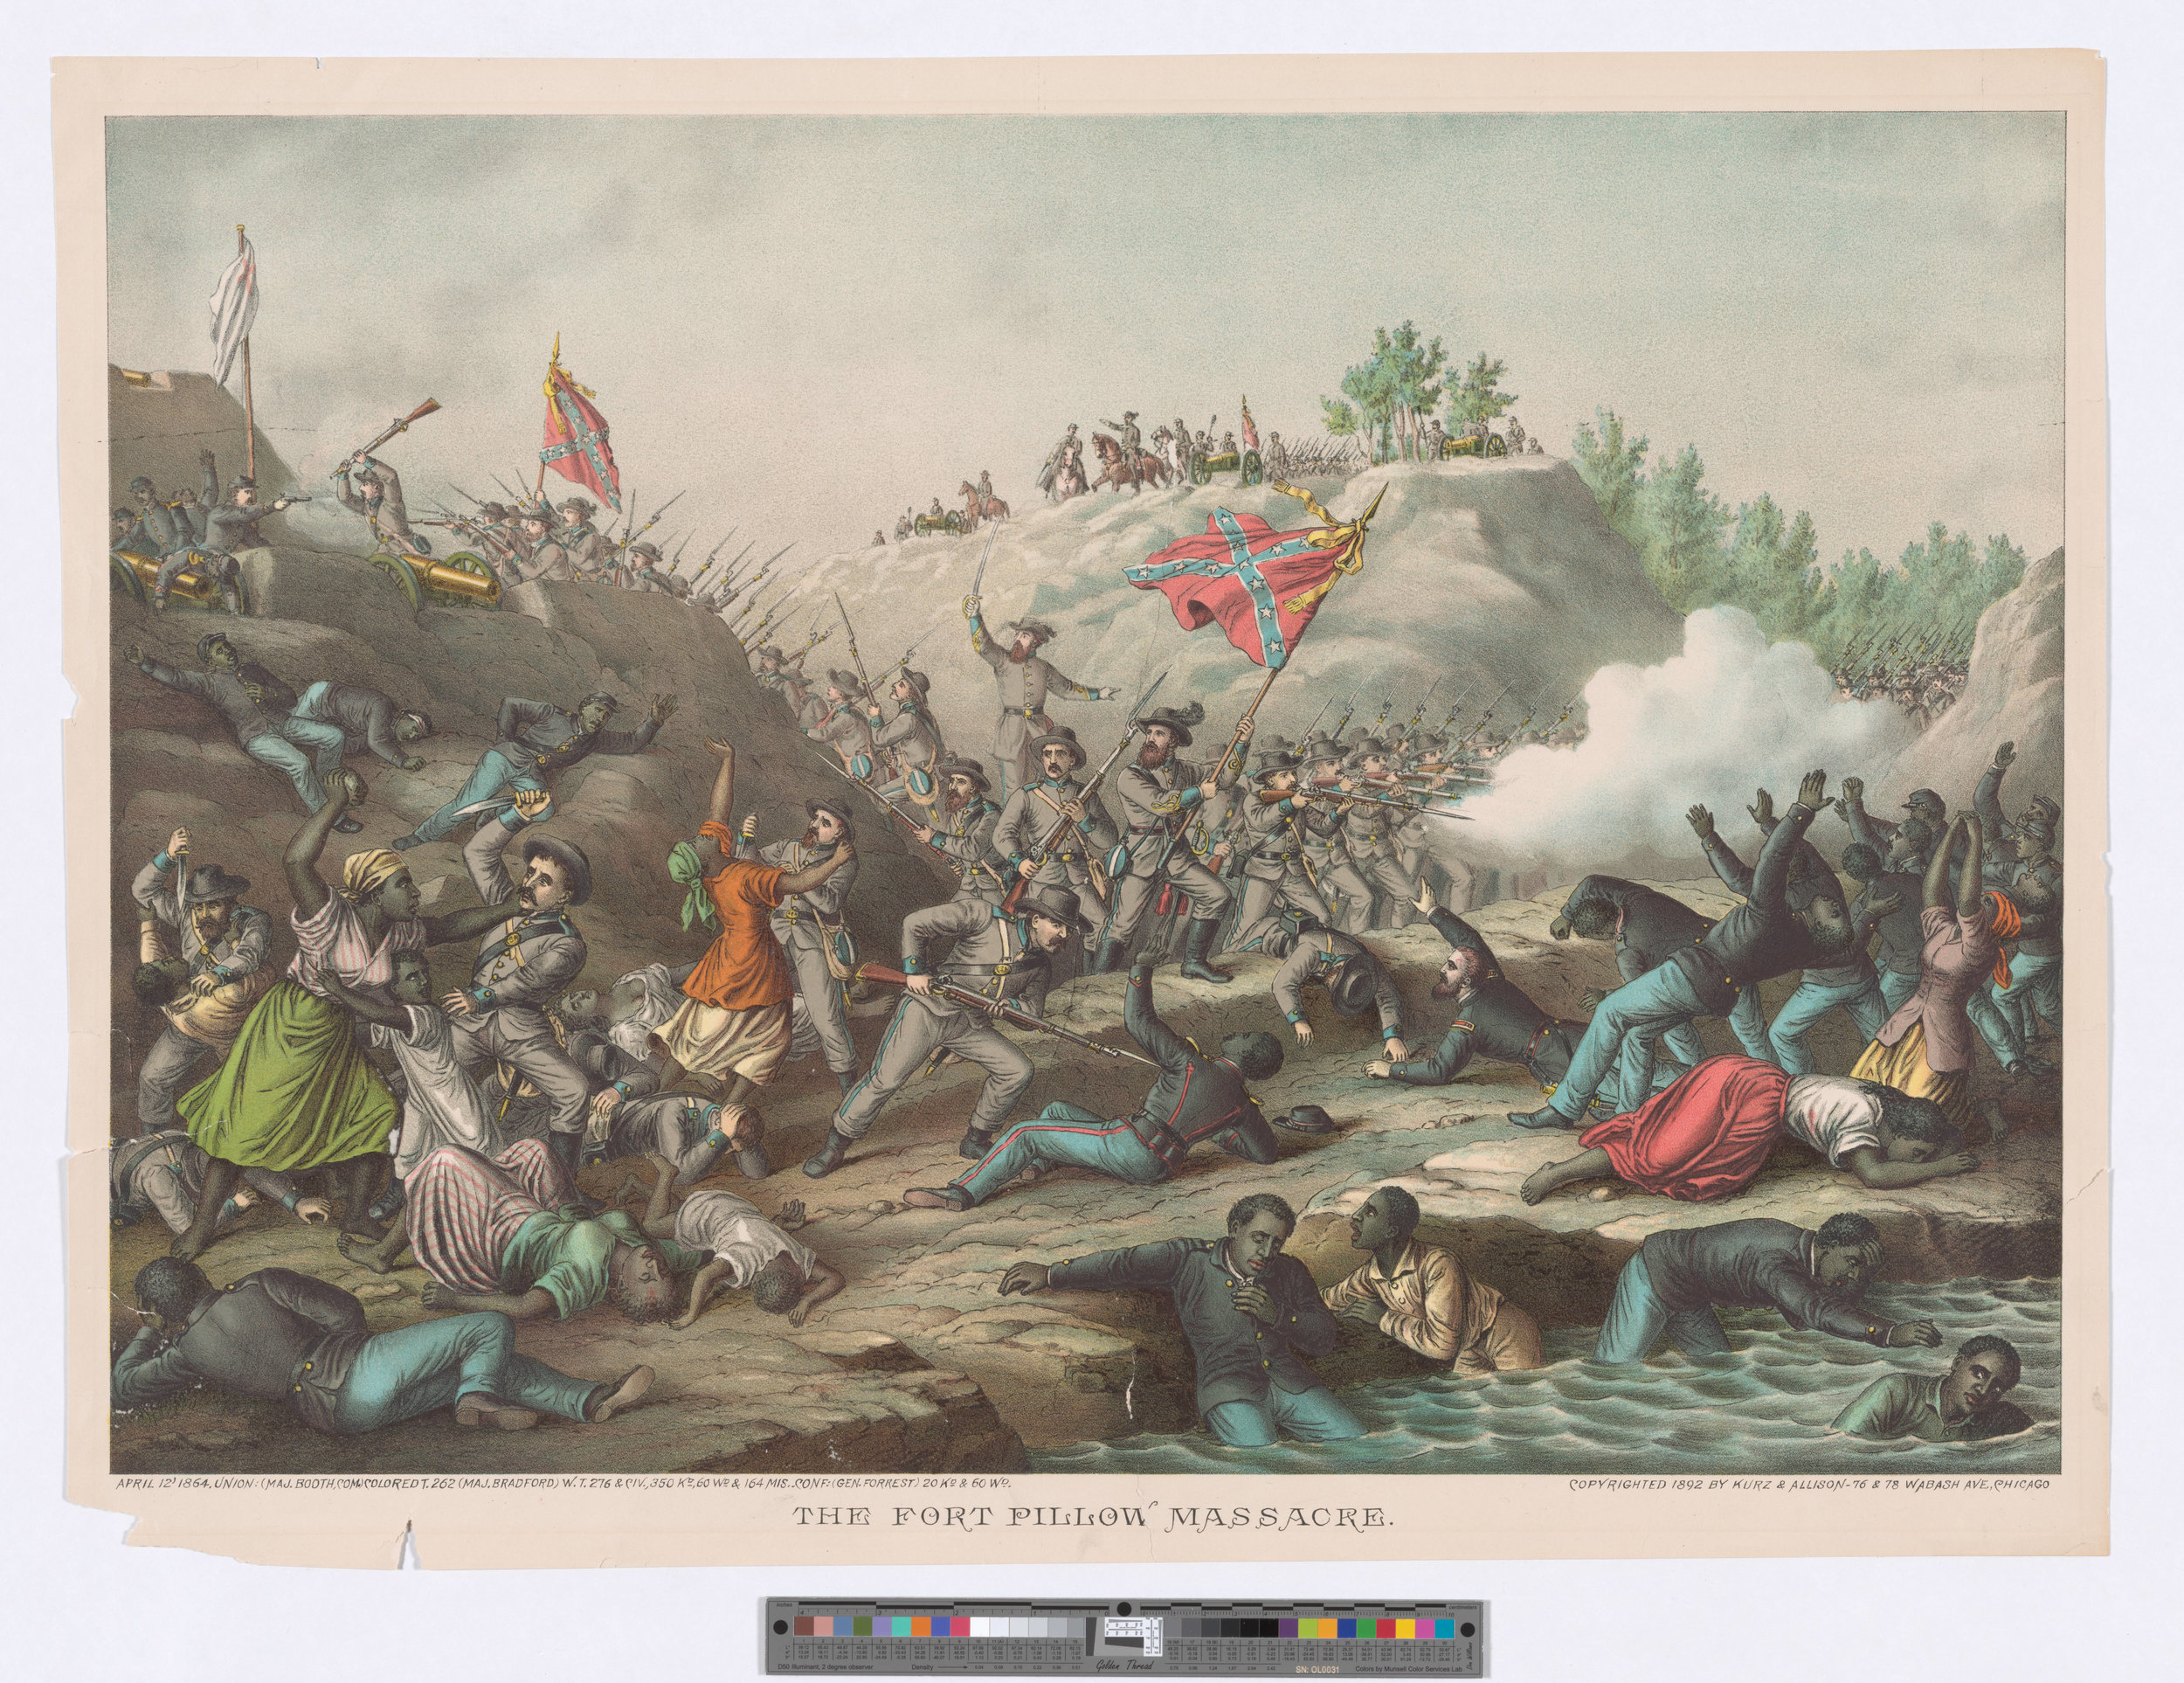 The_Fort_Pillow_massacre_The Jay T. Last Collection of Graphic Arts and Social History, Huntington Digital Library.jpg